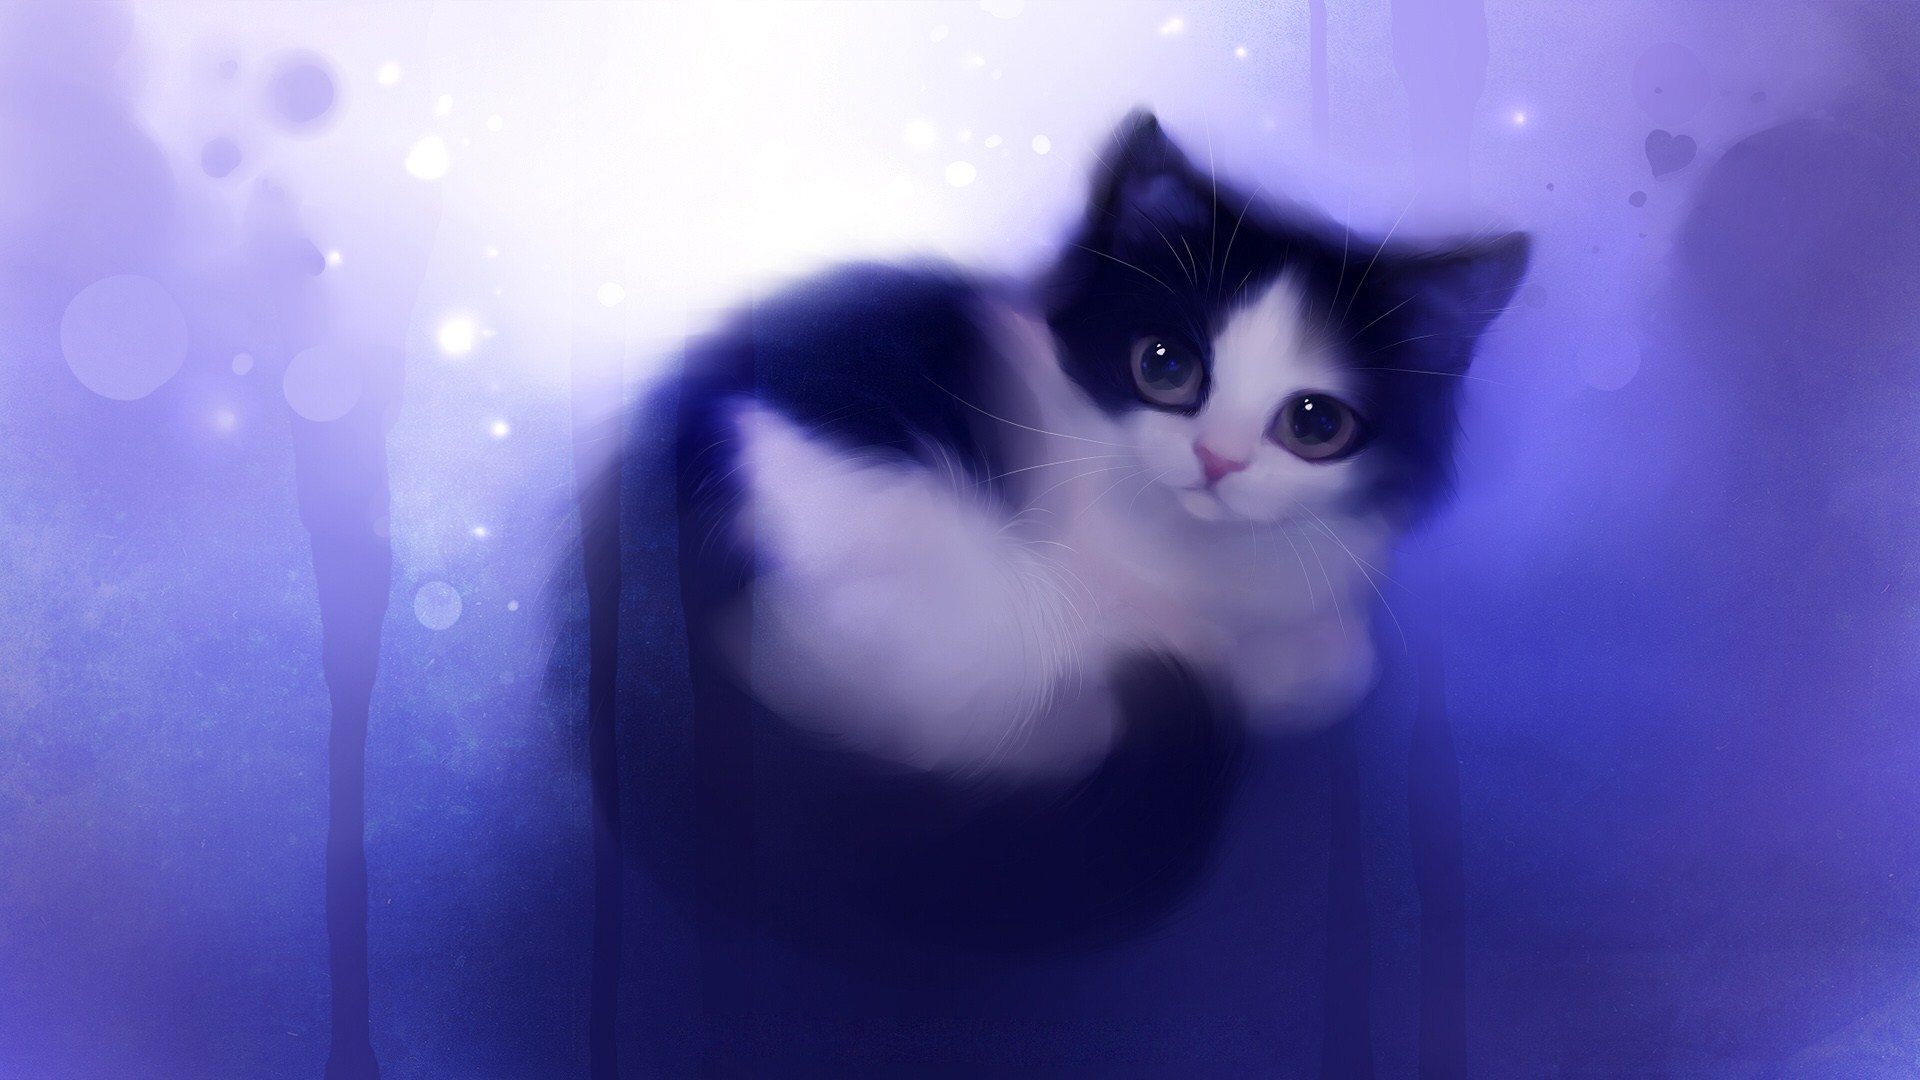 Adorable Cat Wallpaper   Cute Wallpapers 1920x1080